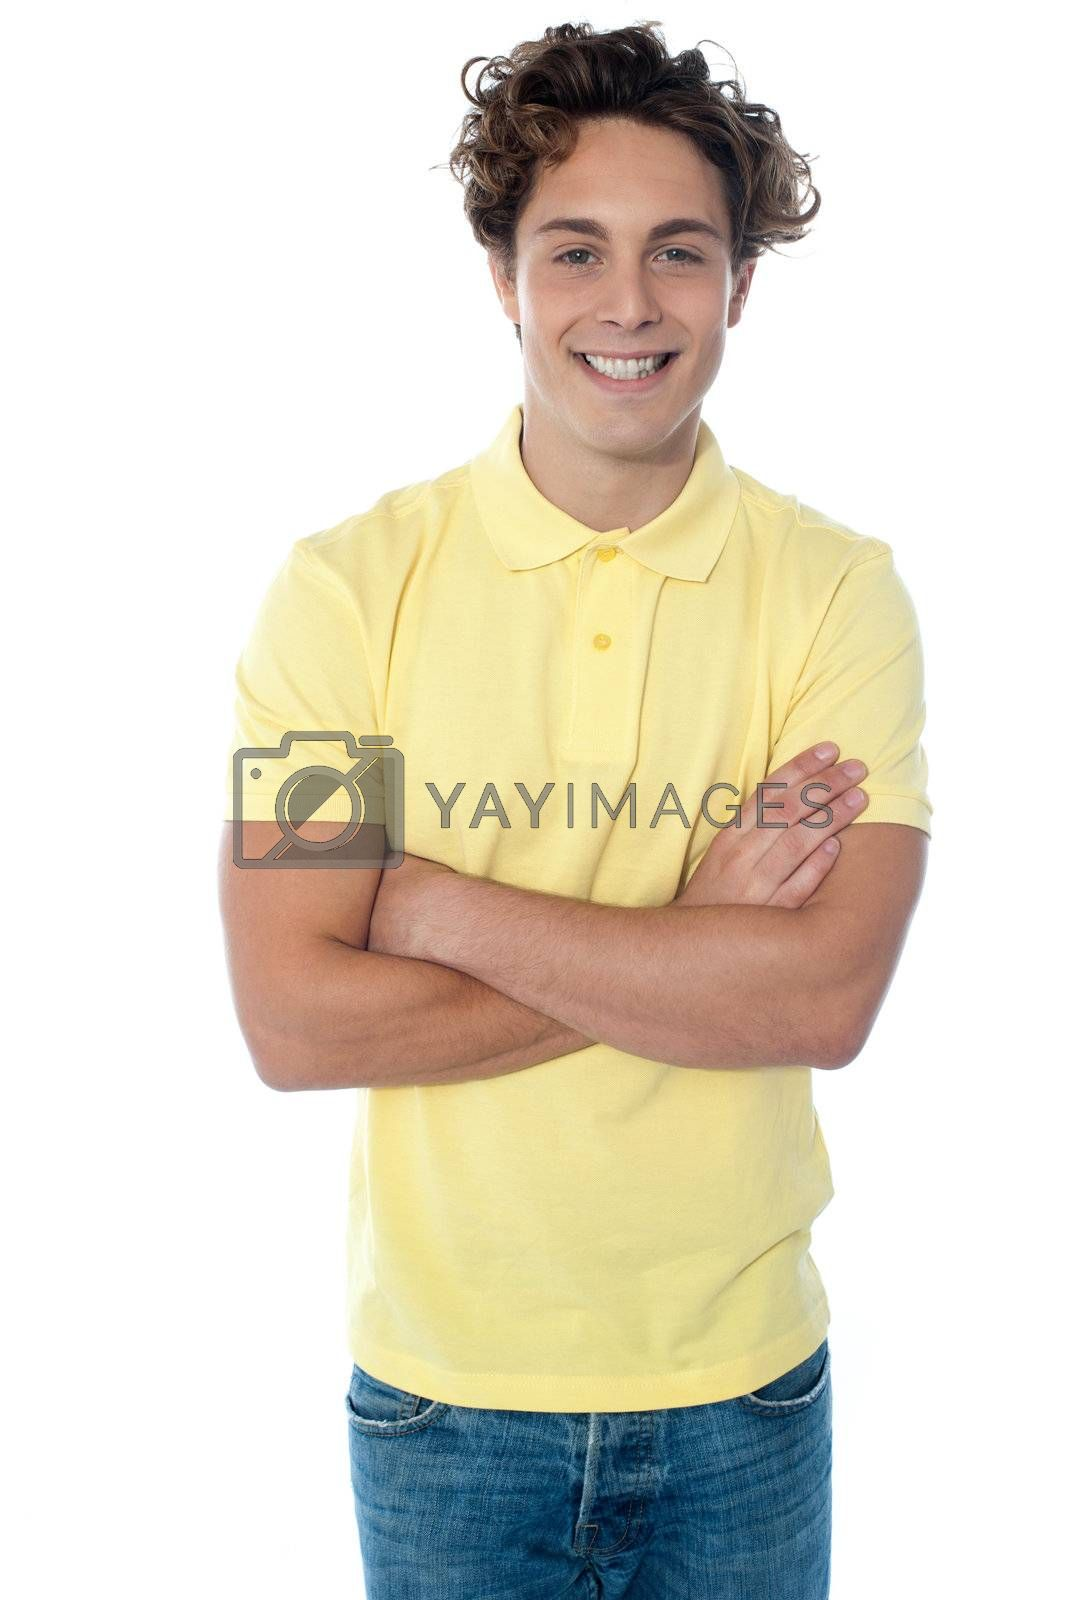 Portrait of young happy smiling man isolated on a white background